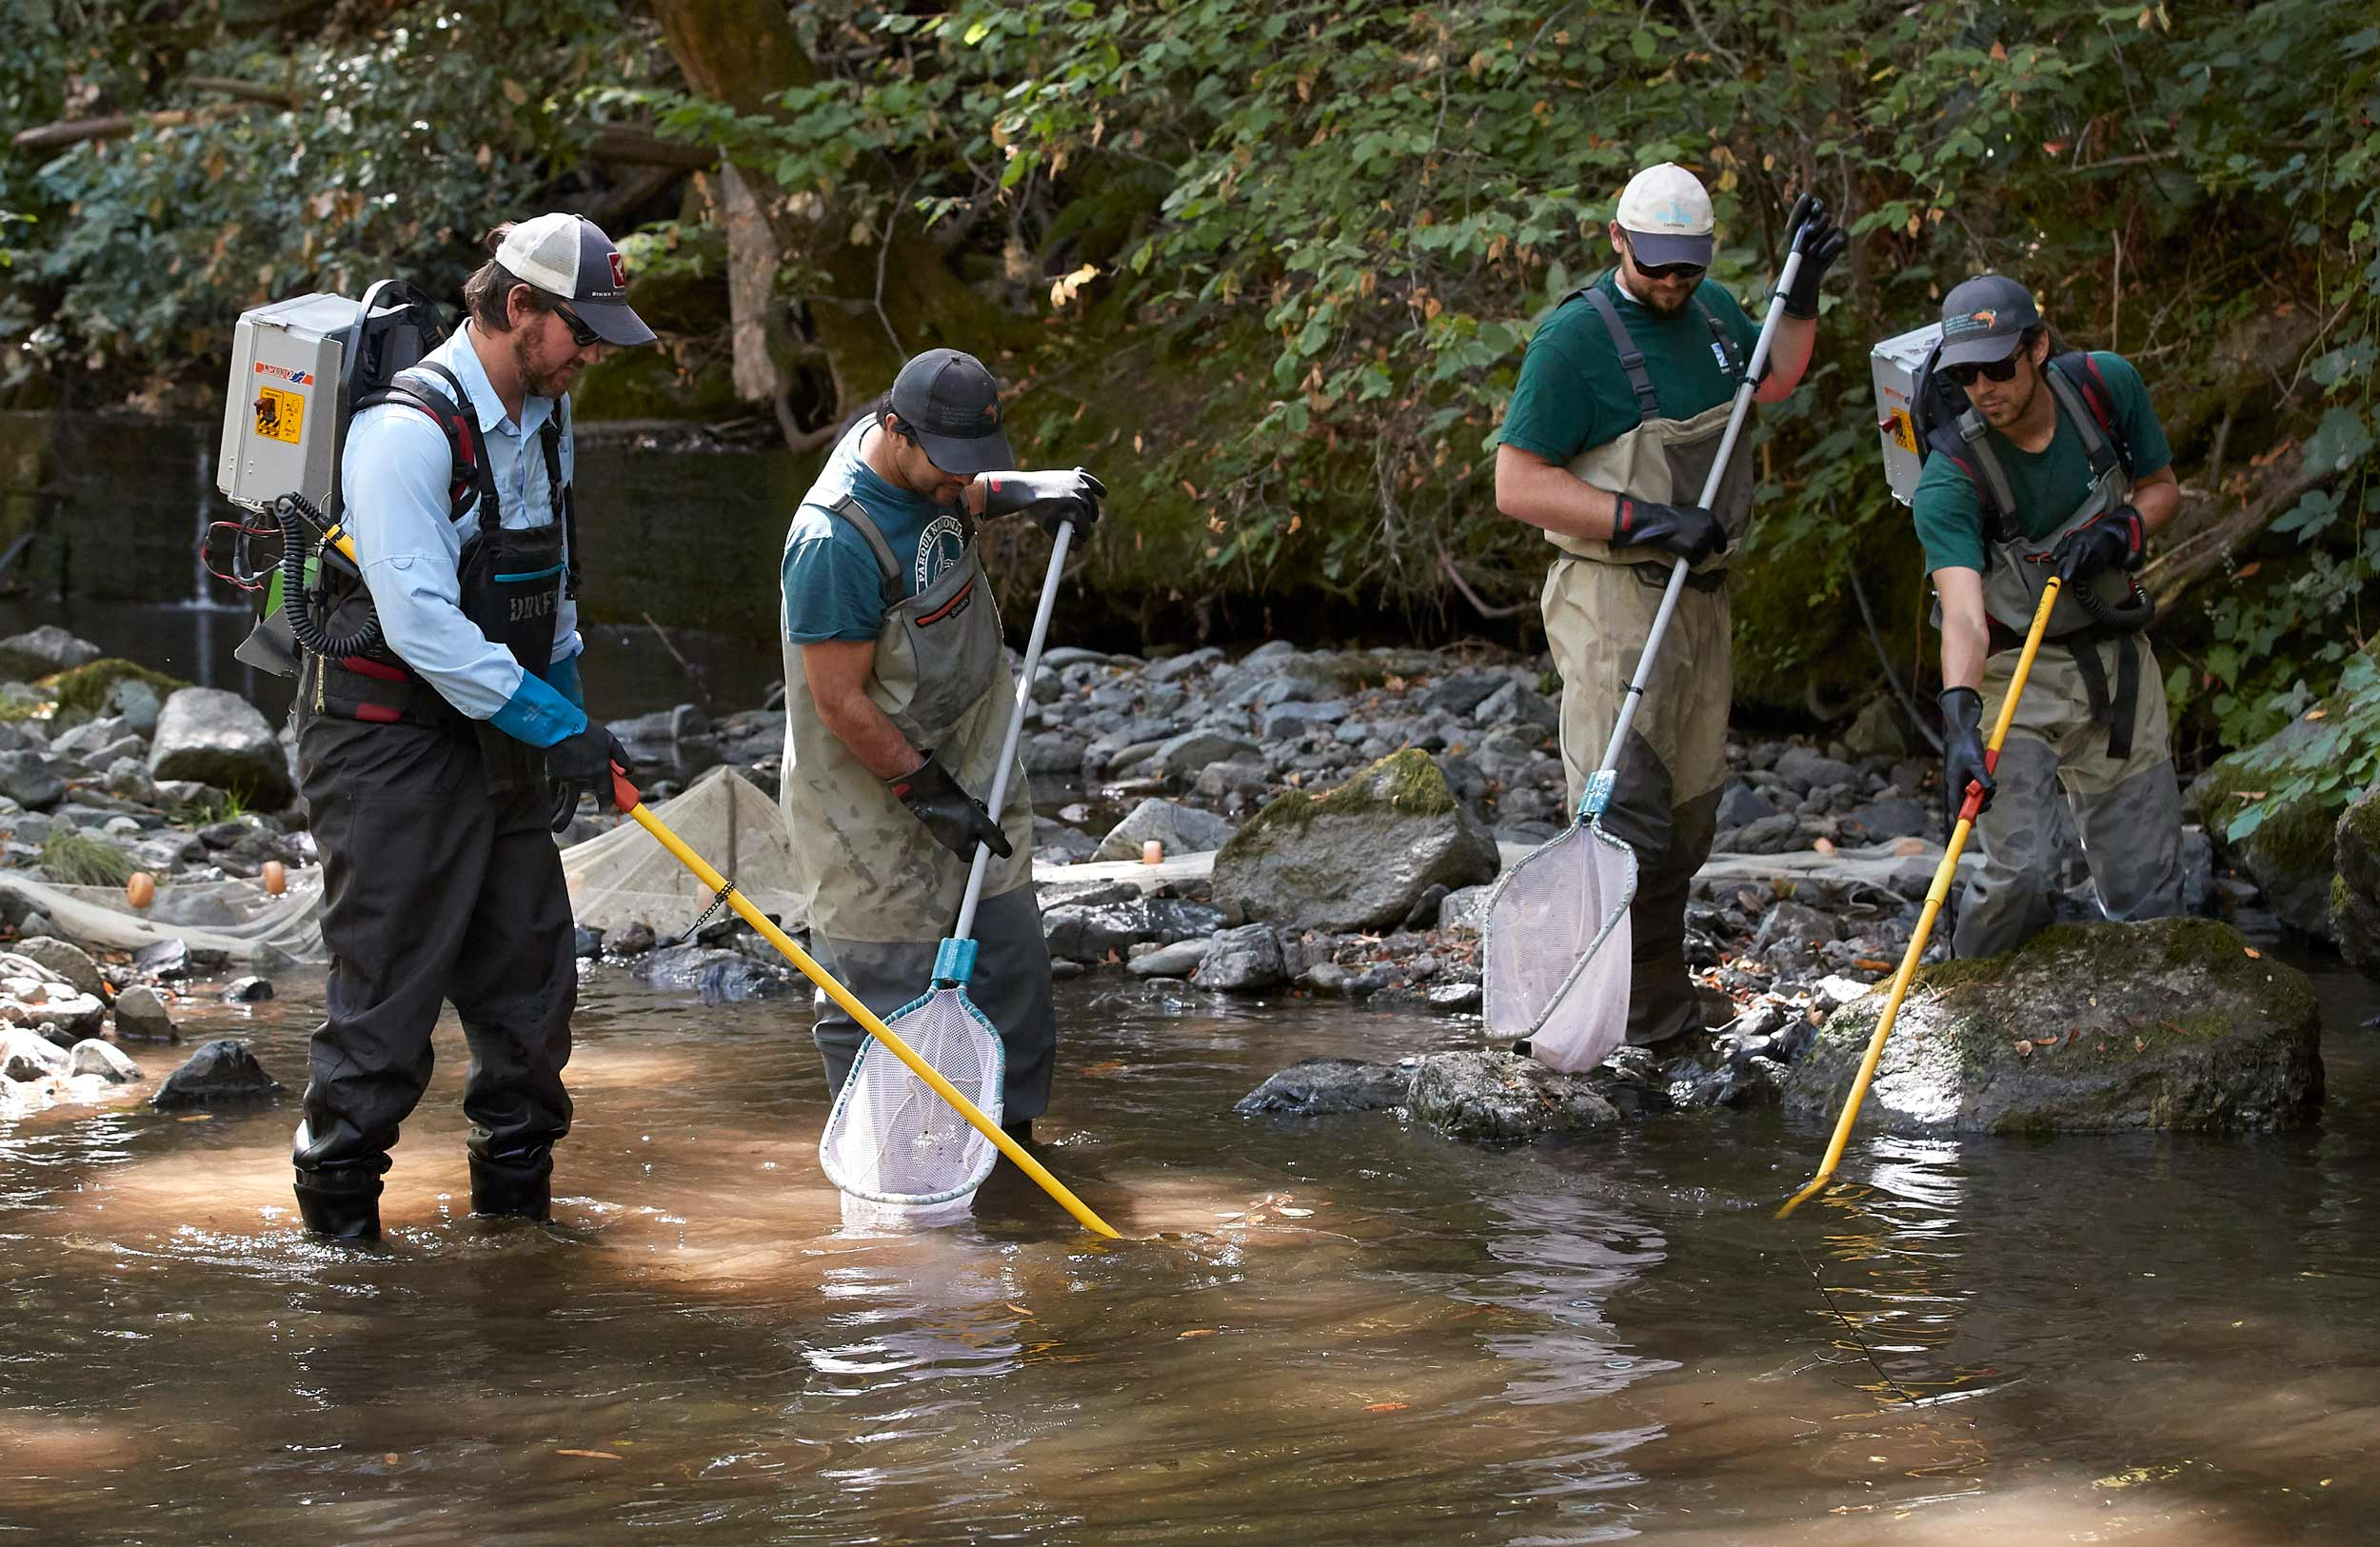 Researchers Electrofish in Stream to Sample Fish Populations